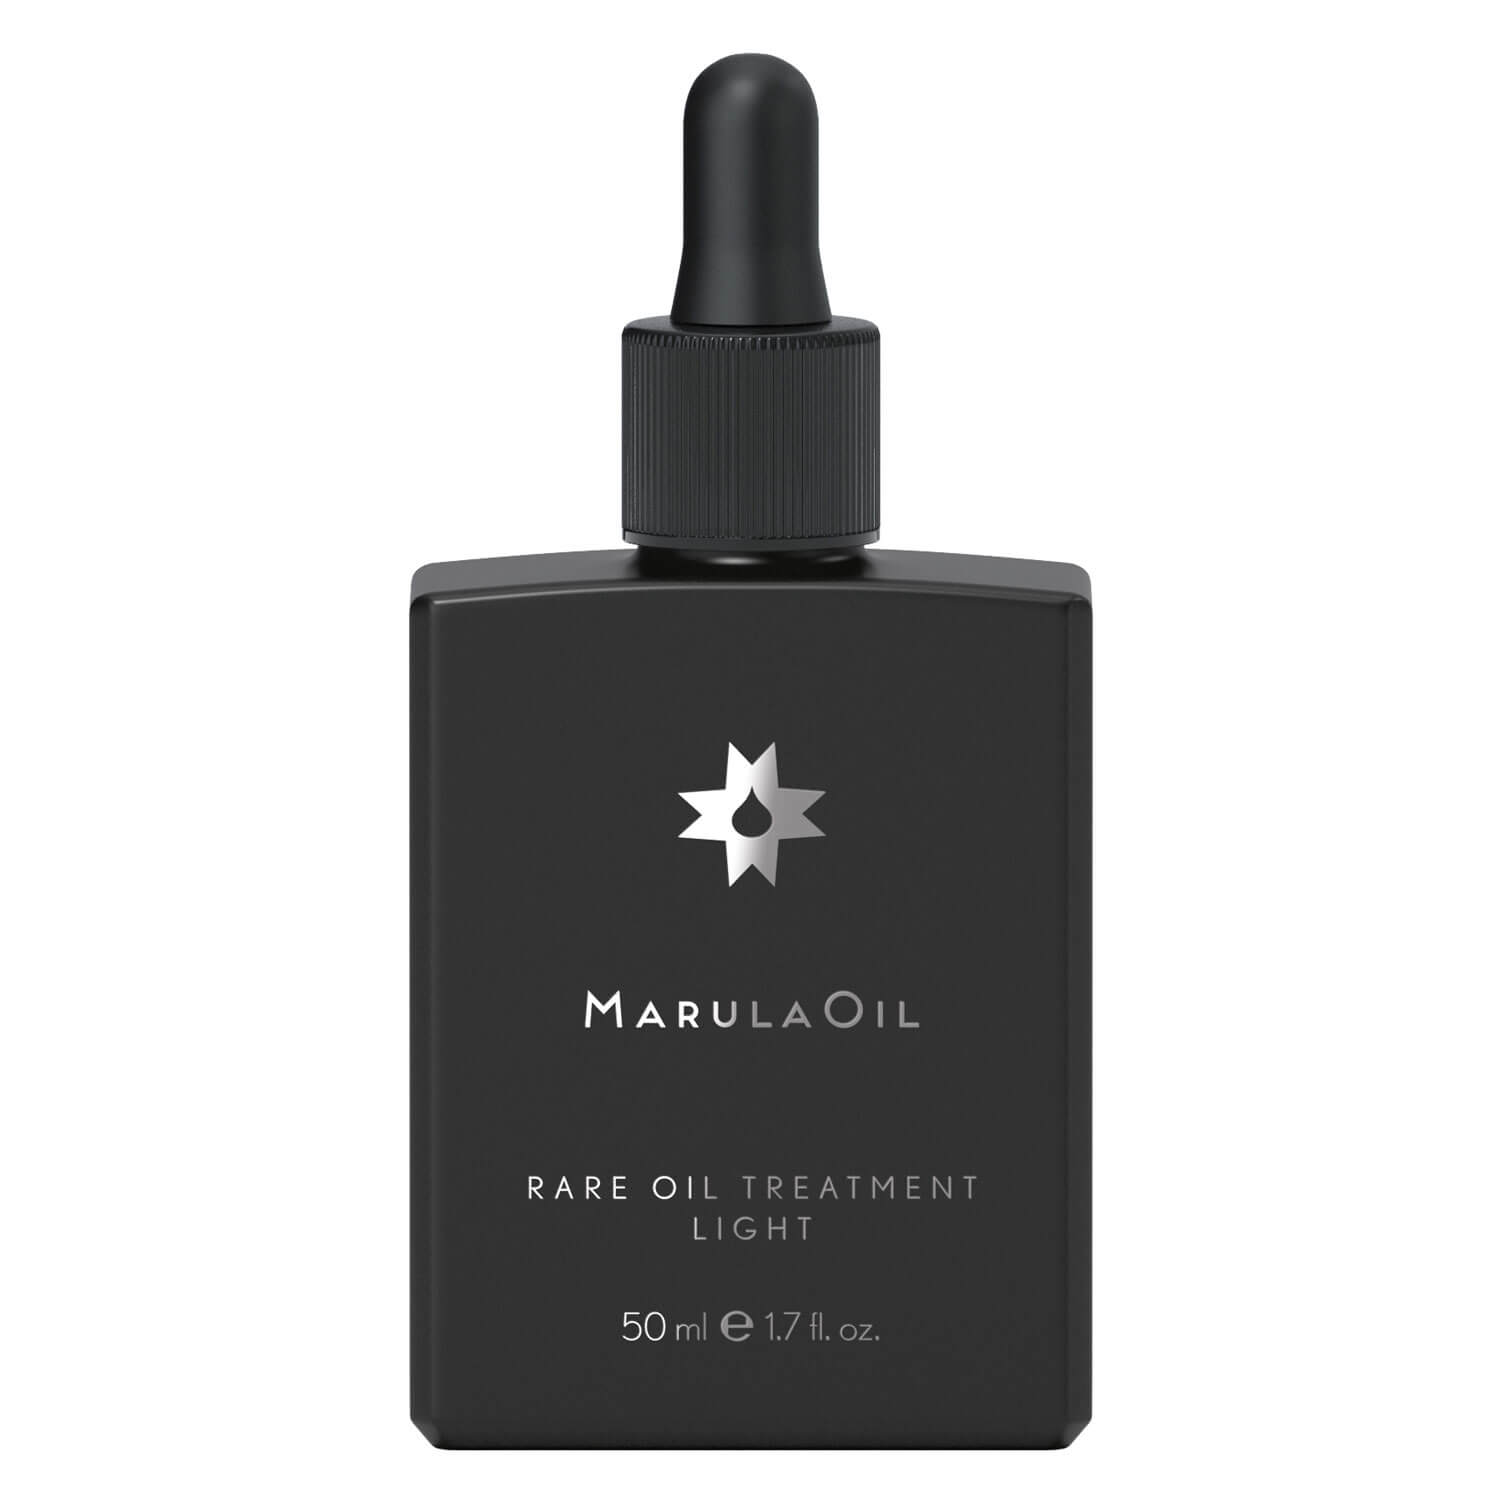 MarulaOil-Rare-Oil-Treatment-Light